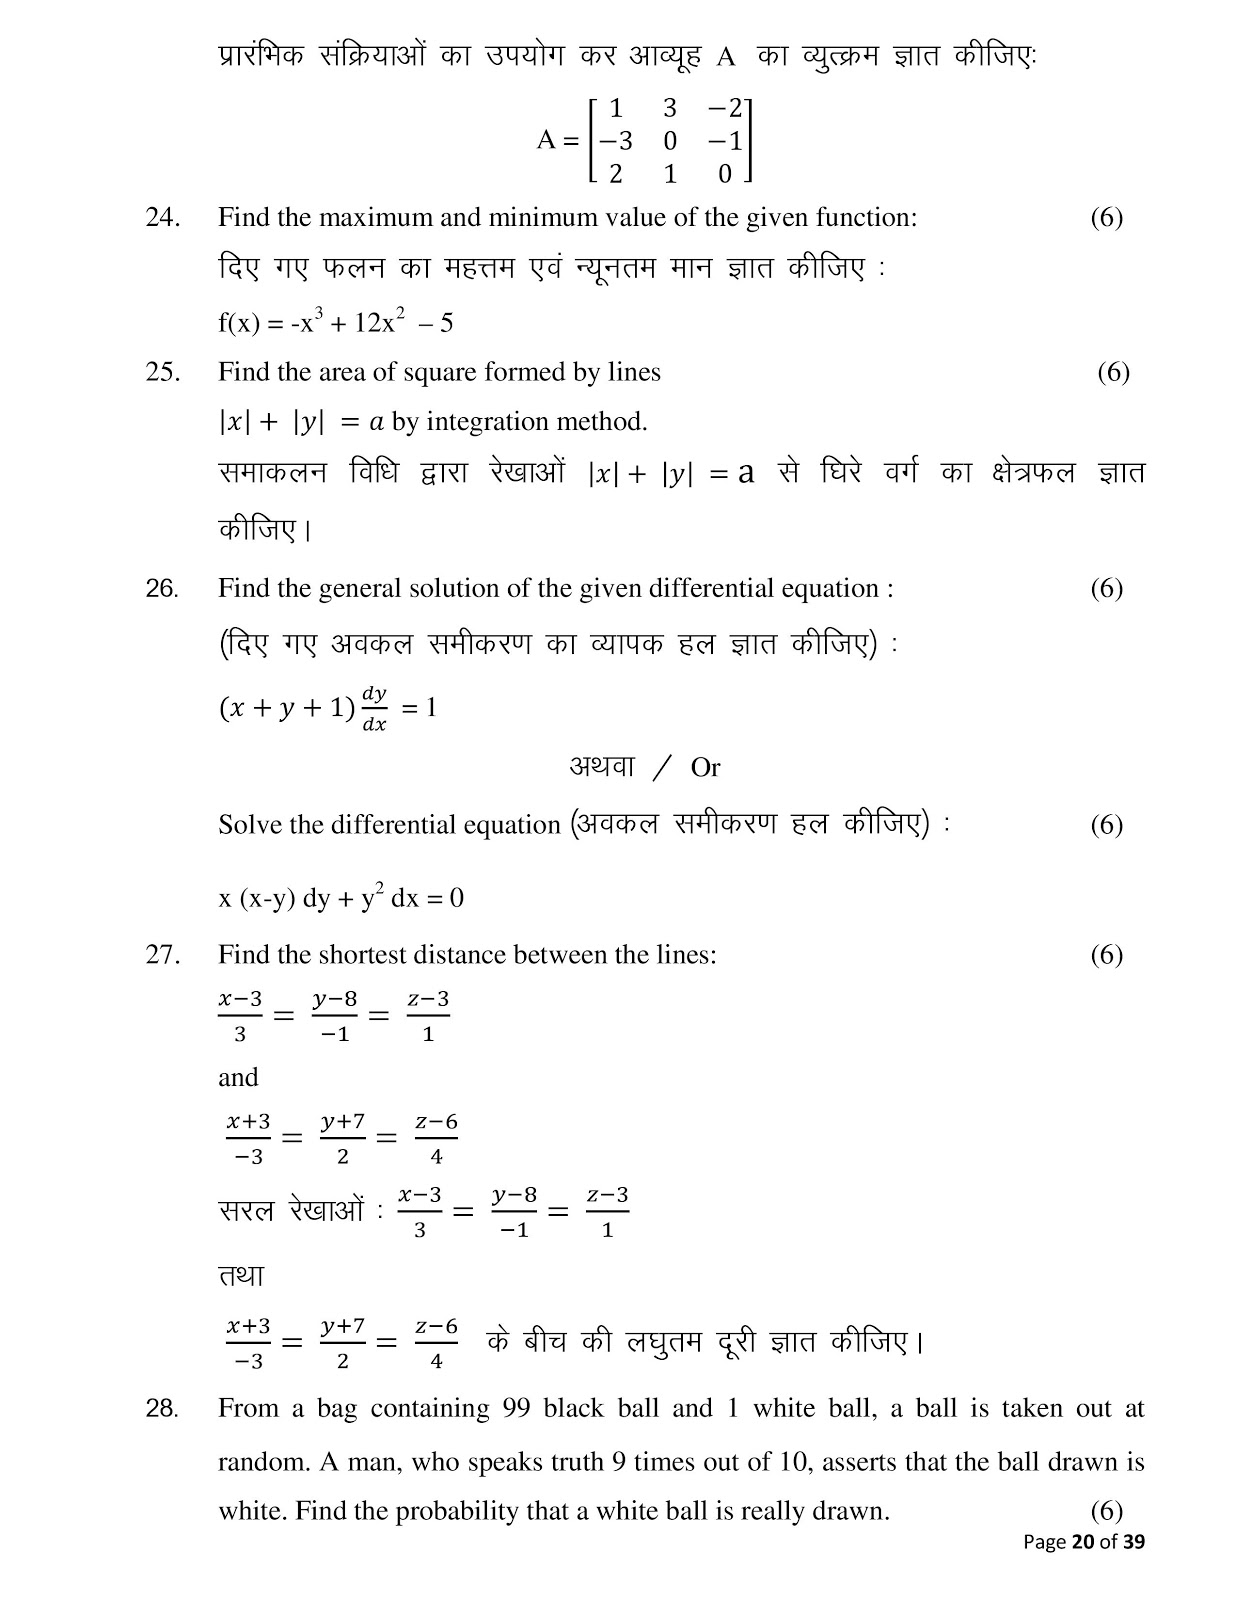 JAC board class 12th 2018 Mathematics model sample paper